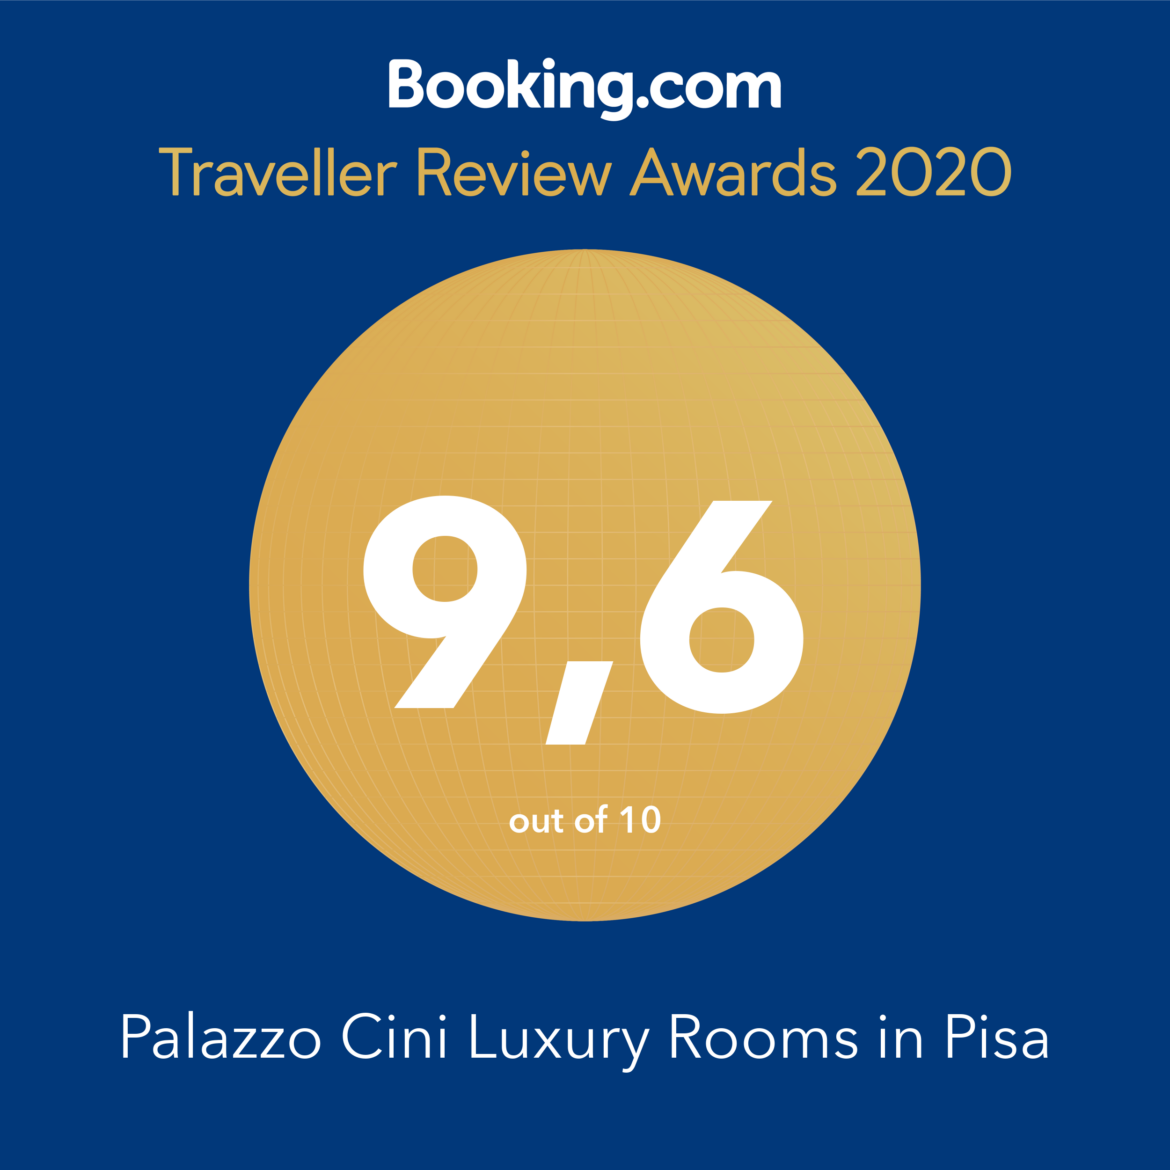 premio-traveller-review.png